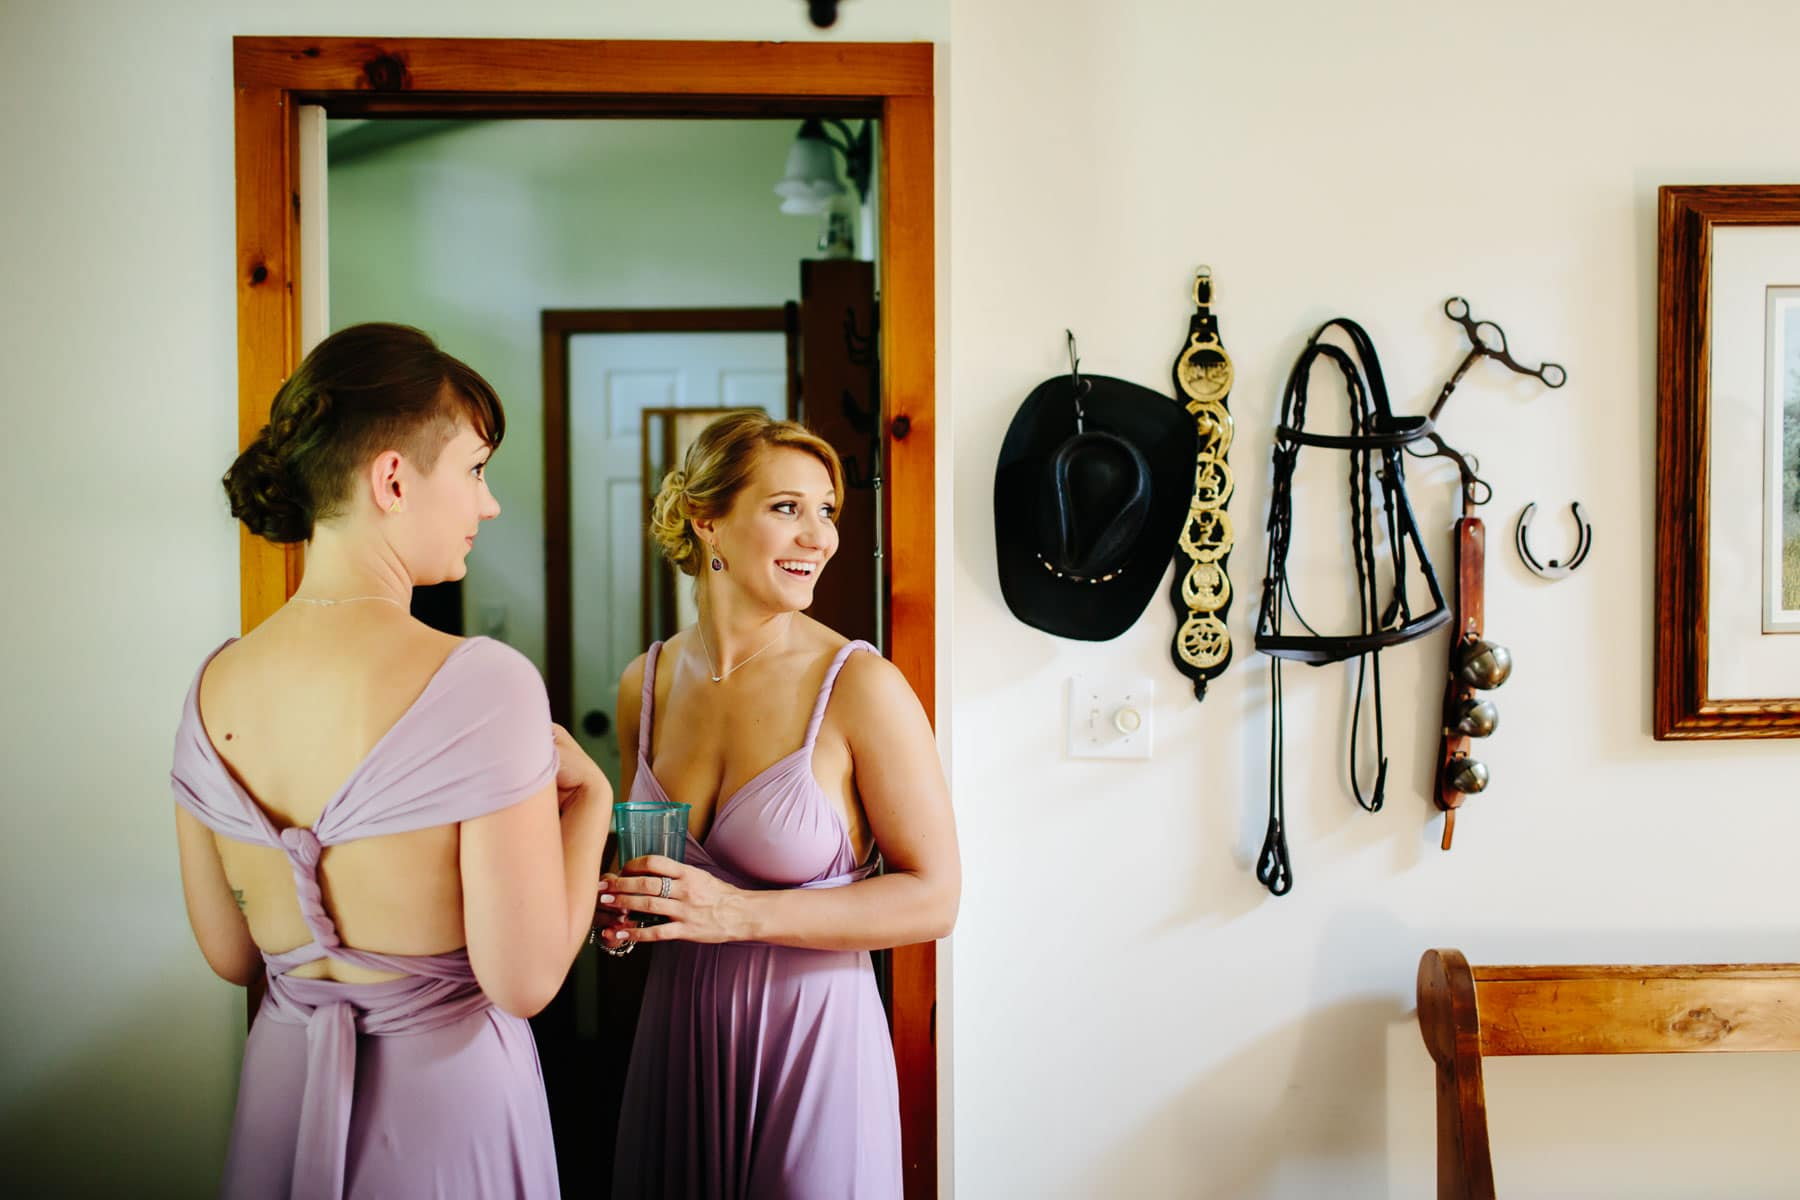 Two bridesmaids in violet dresses inside a BnB by a doorway in this rustic Ball's Falls wedding.